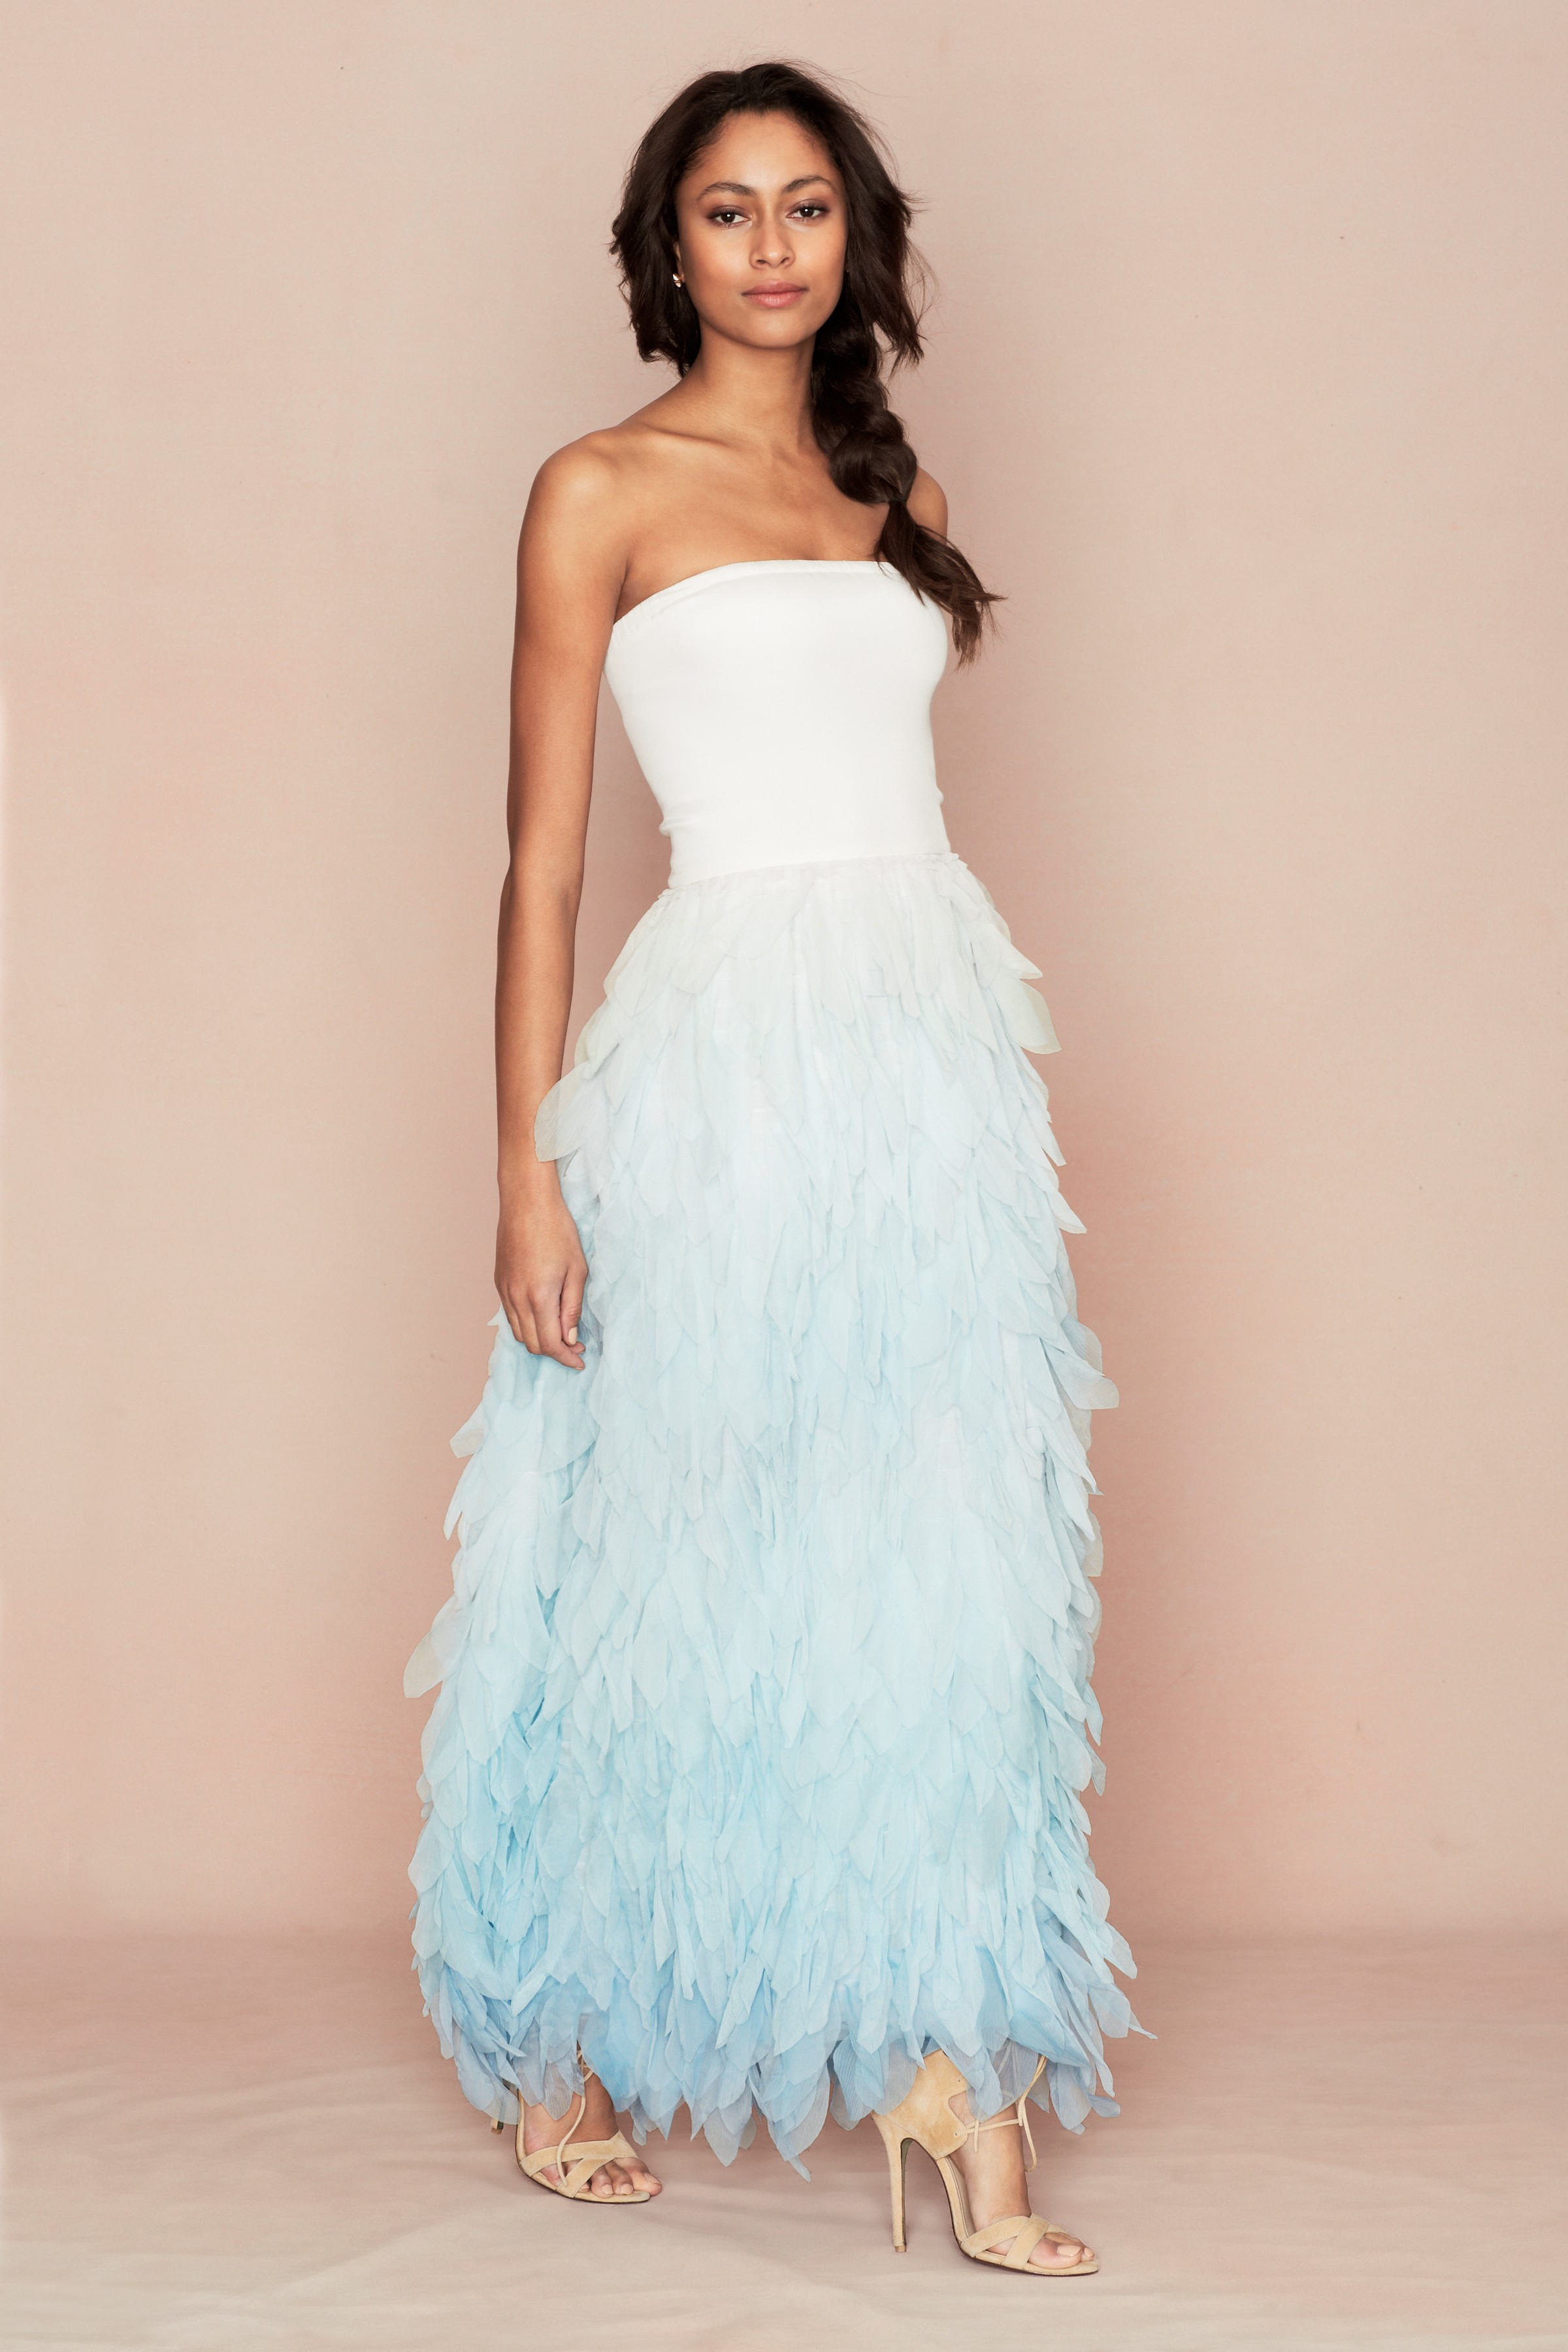 Beach Style Wedding Dresses Diana Elizabeth